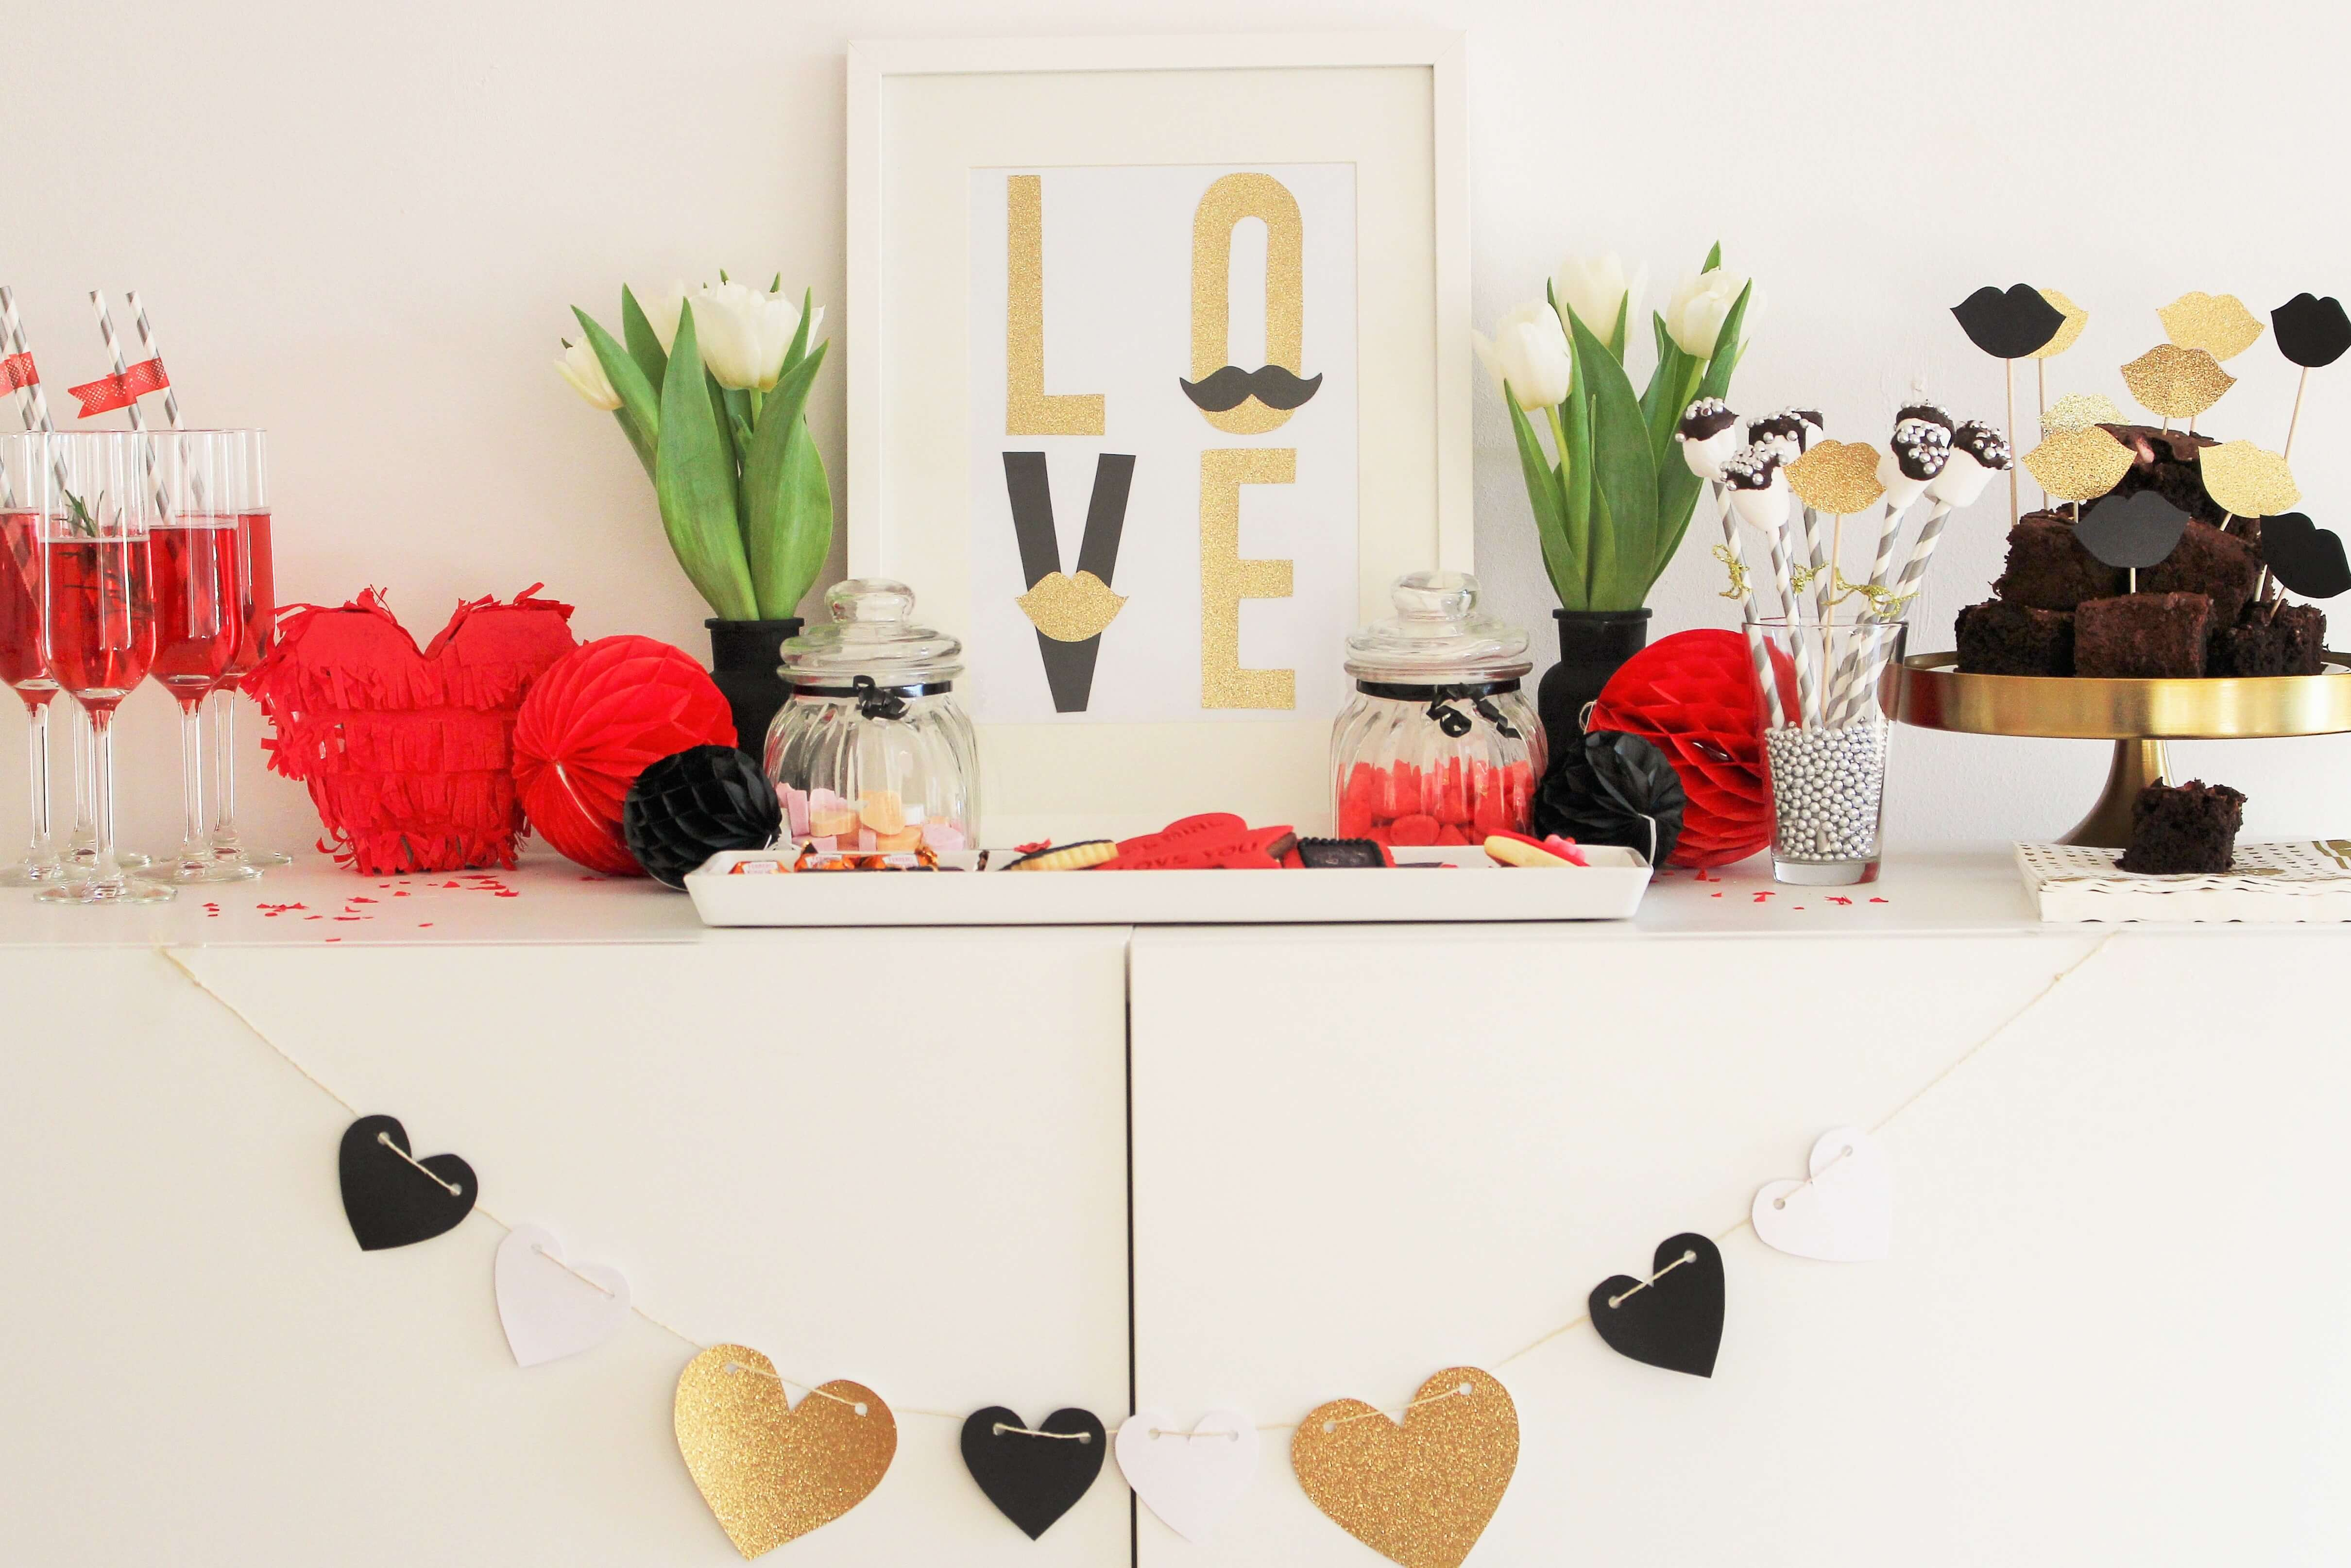 valentinstag sch n feiern last minute ideen f r deko geschenke und leckeres spreadlove. Black Bedroom Furniture Sets. Home Design Ideas